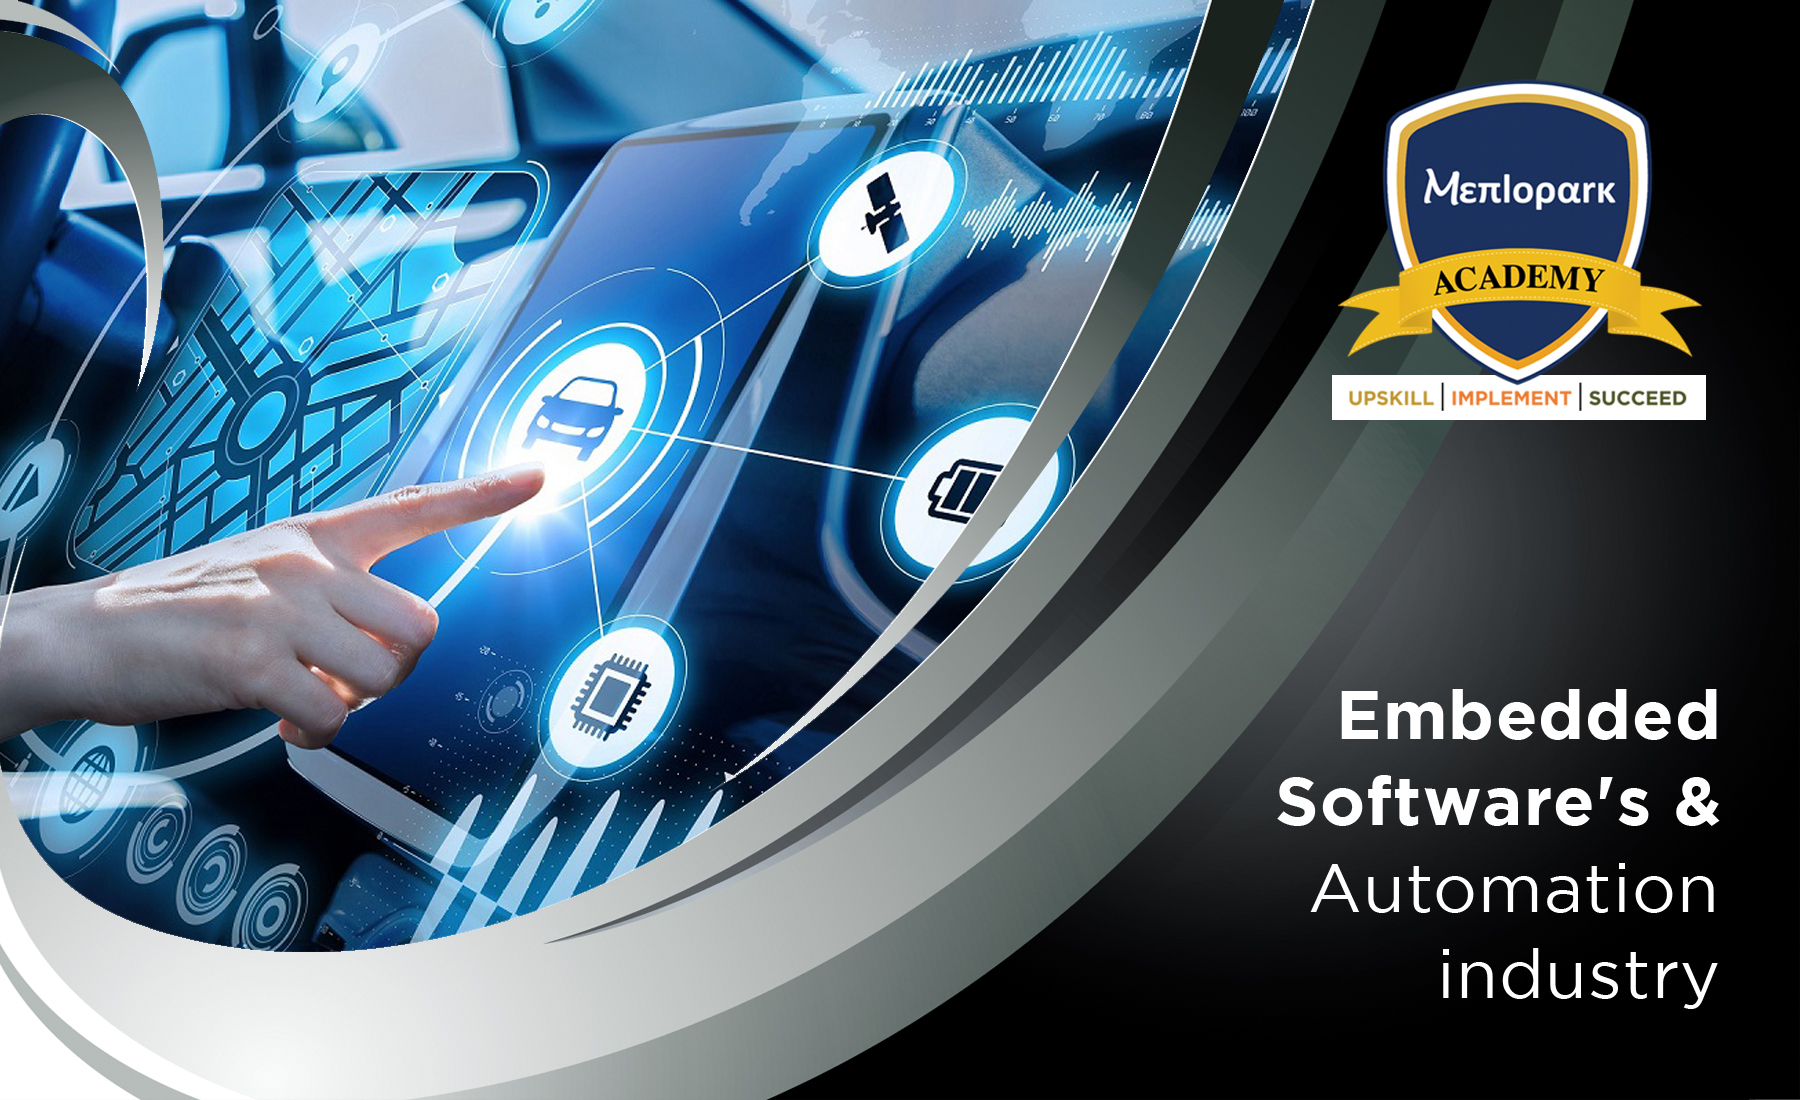 embedded software automation industry